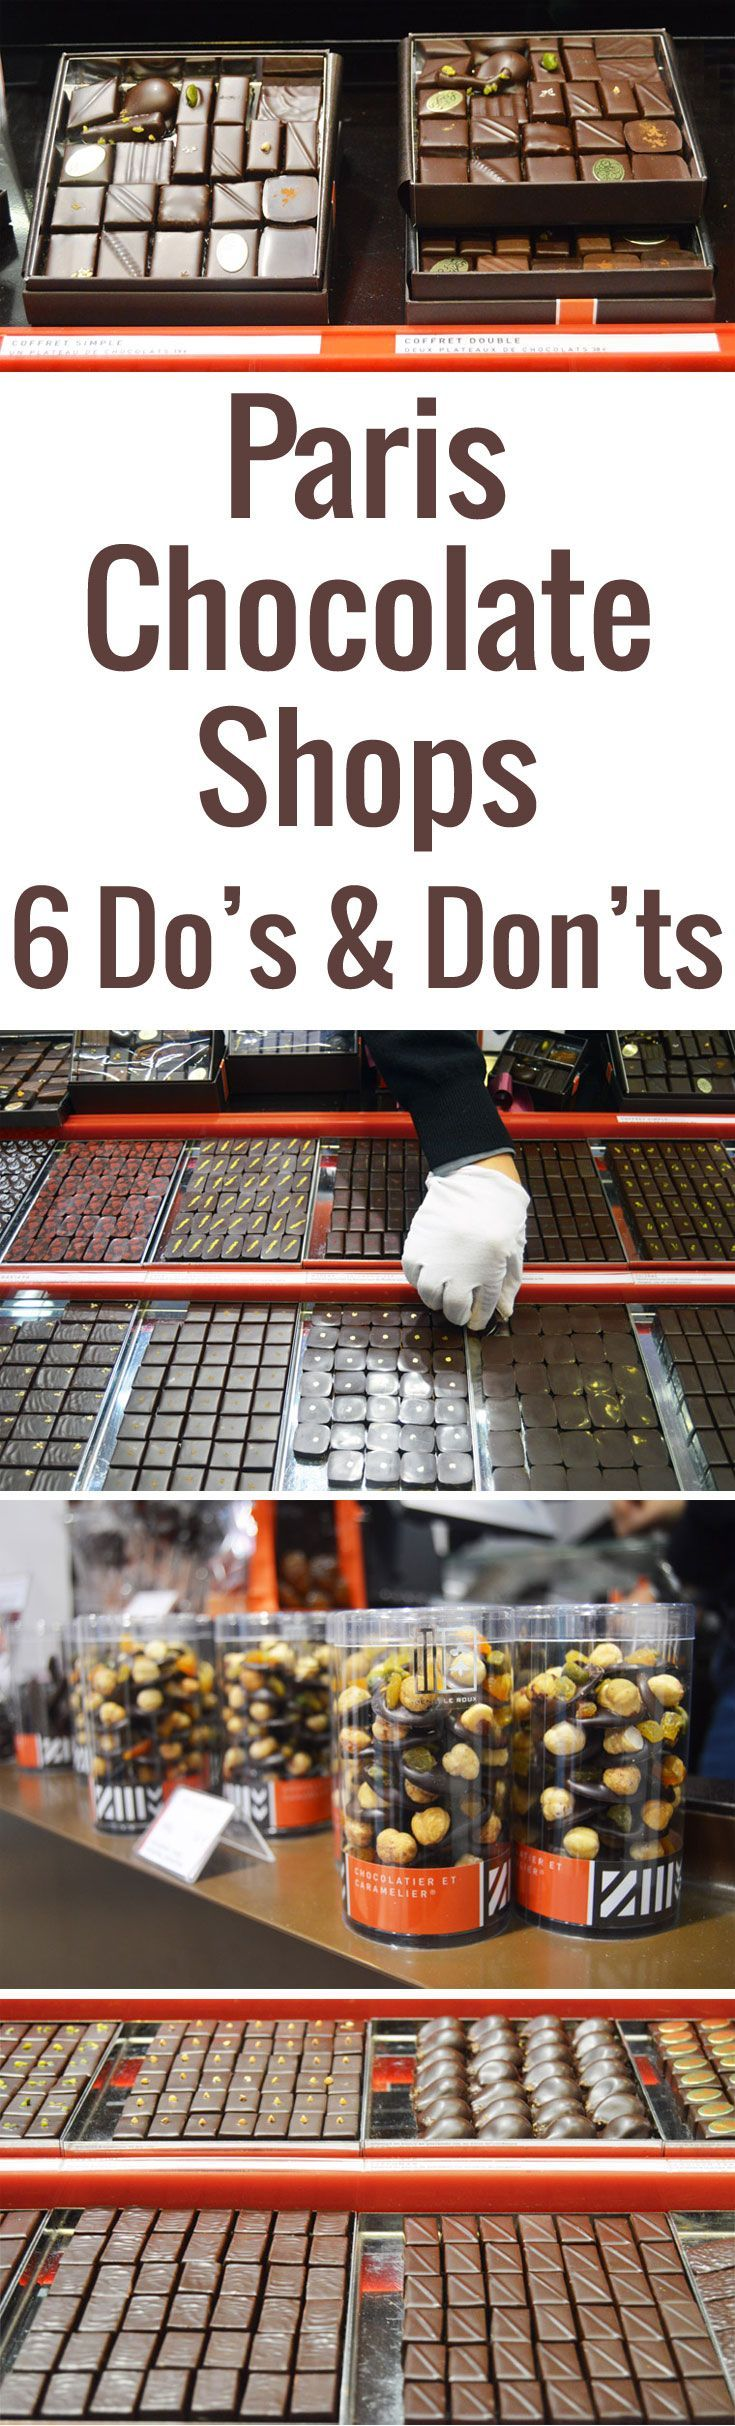 Learn to navigate Paris chocolate shops just like a Parisian with this handy insider guide! Includes Top 5 Paris Chocolate Shops you must visit.